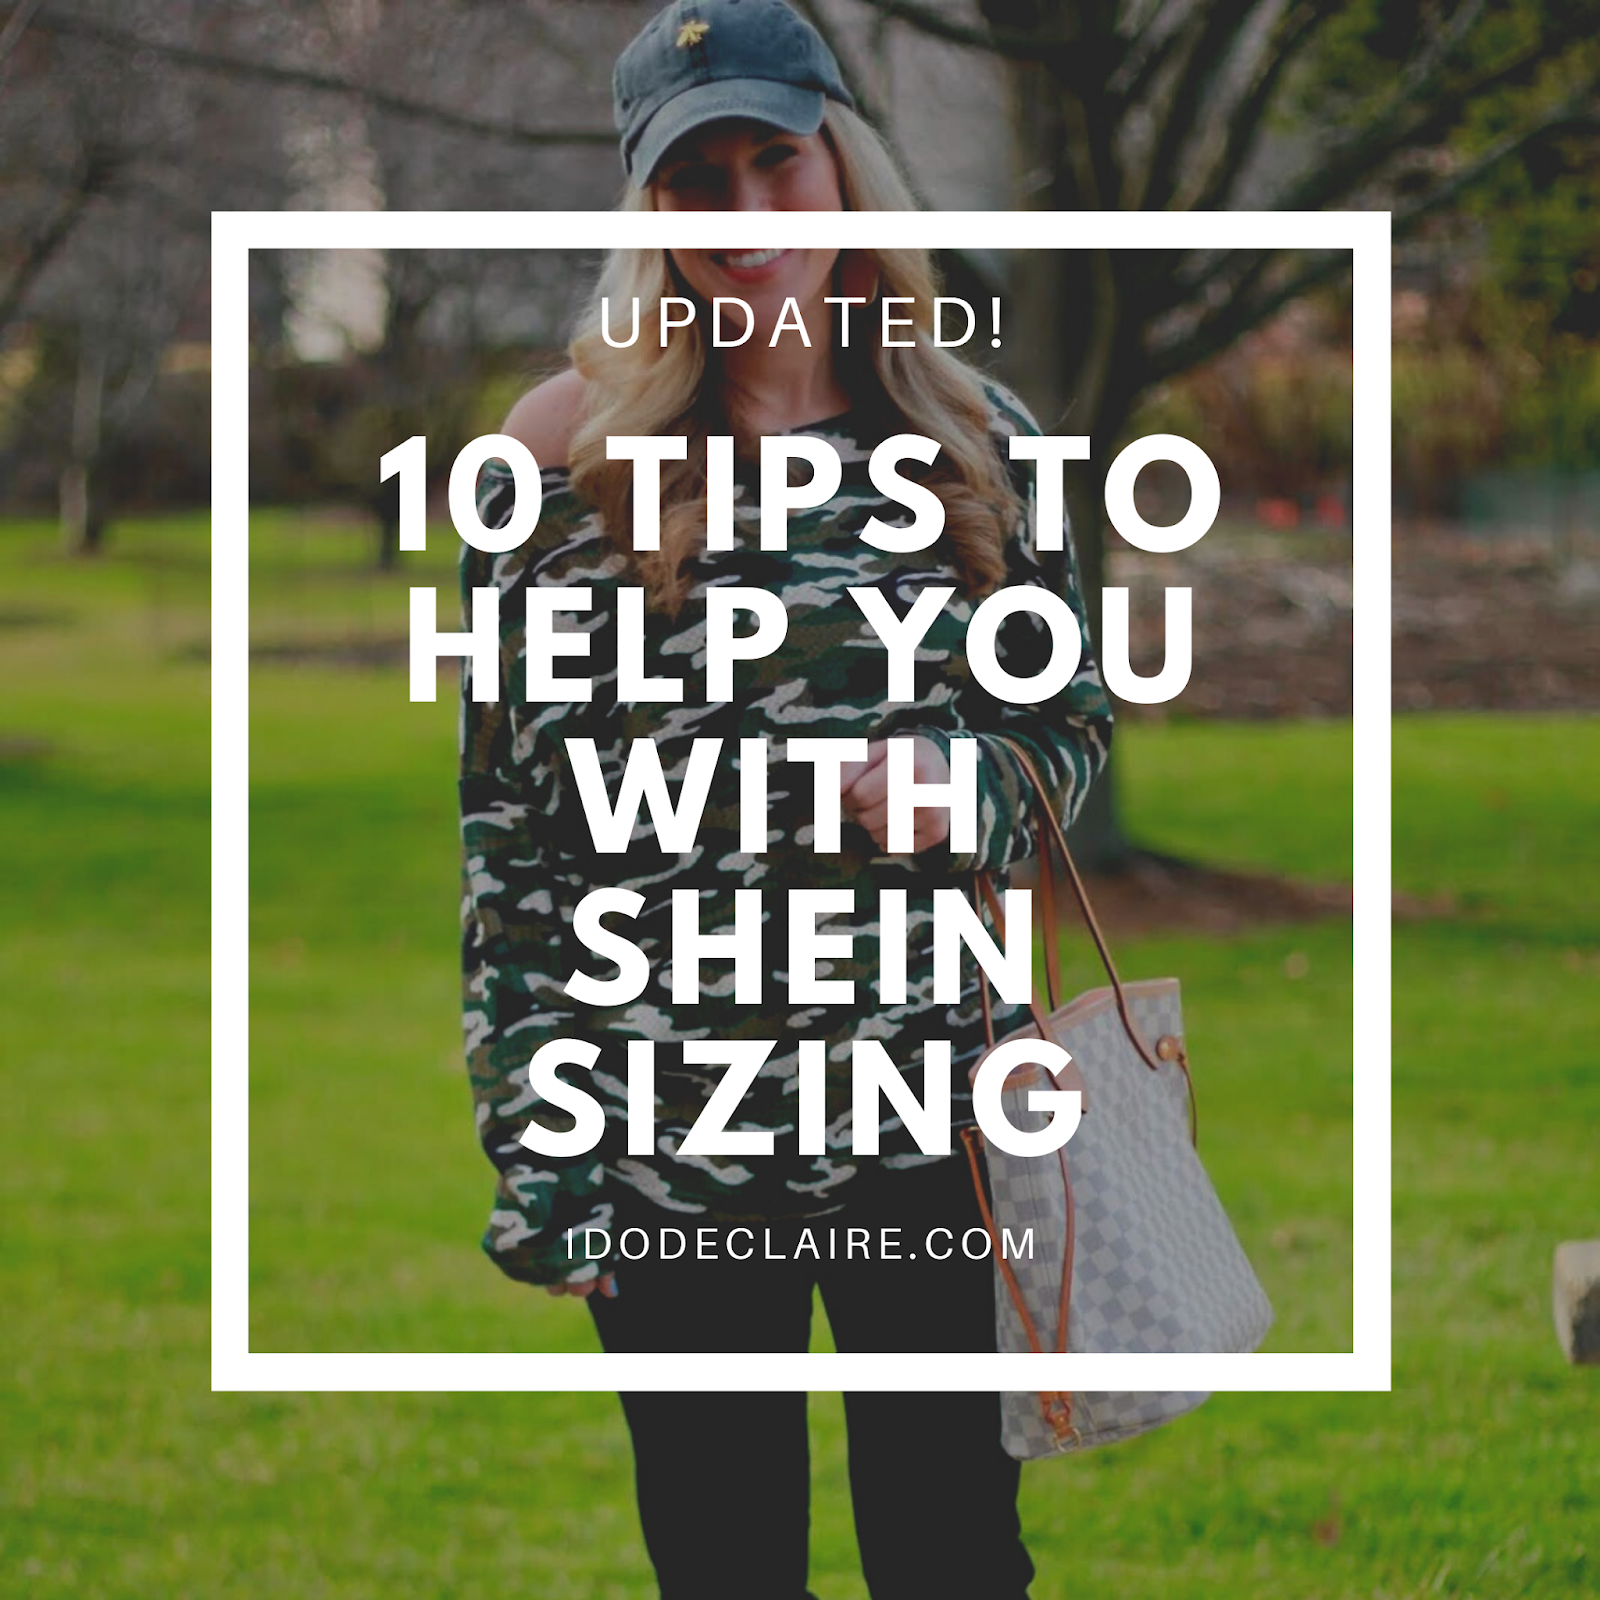 10 Tips for Shein Sizing